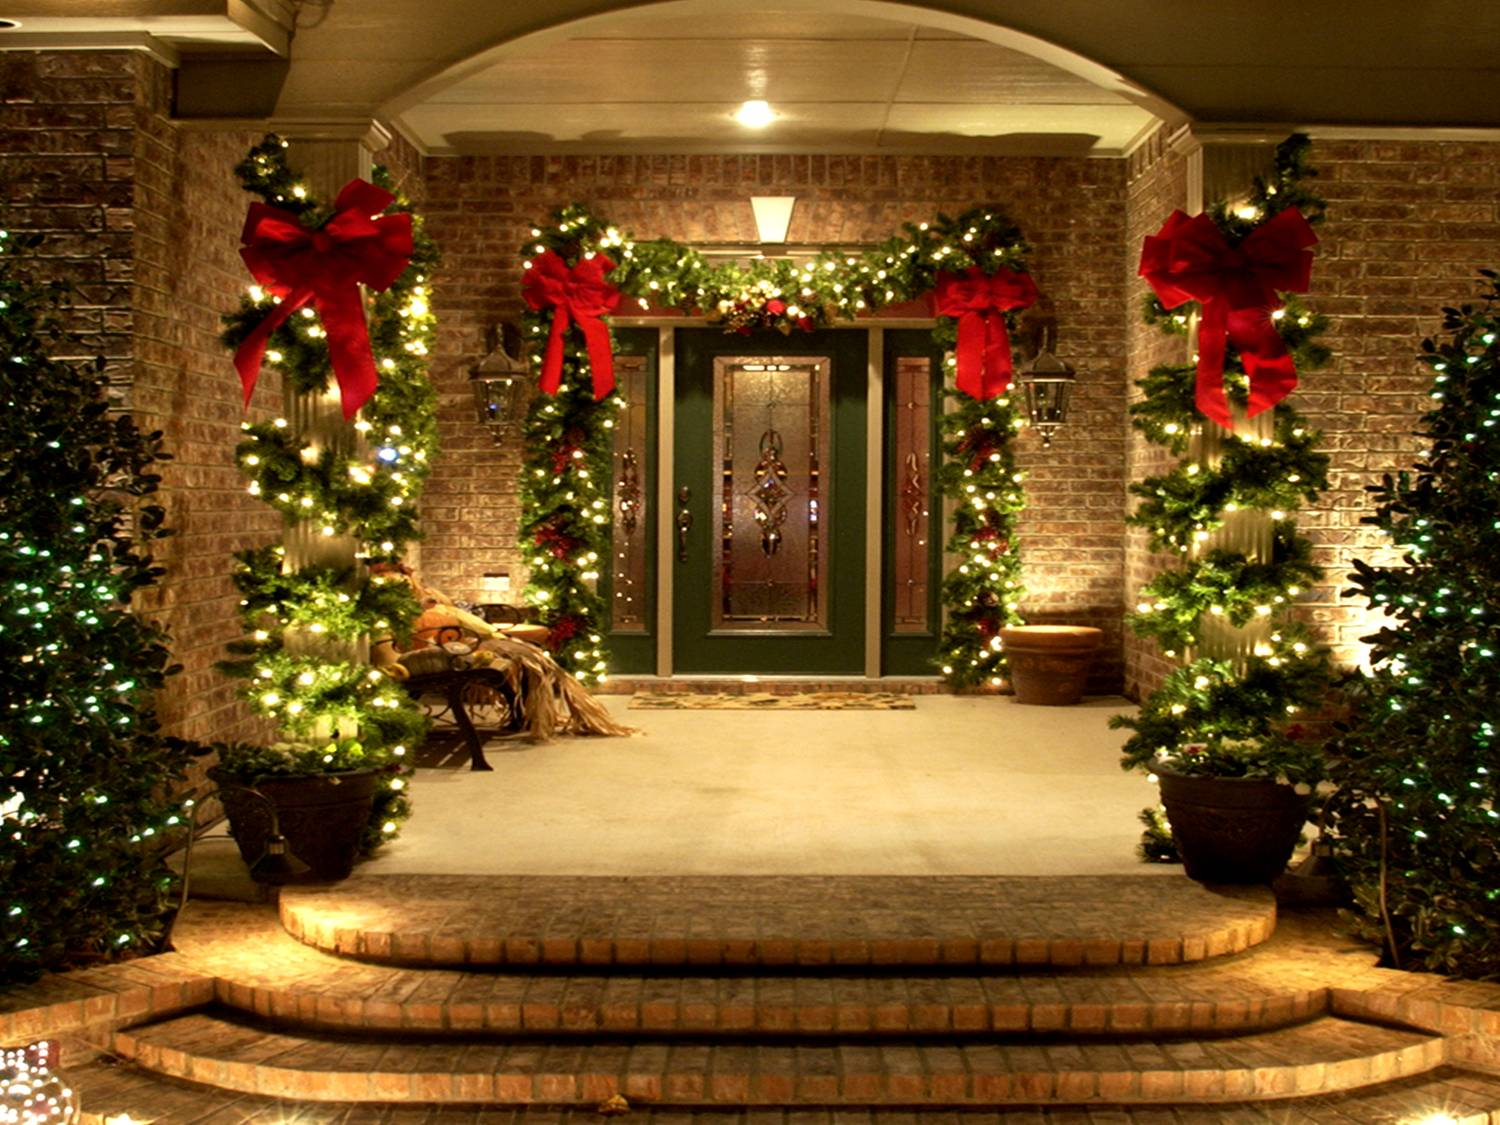 Christmas Outdoor Decoration Up to 20% Off